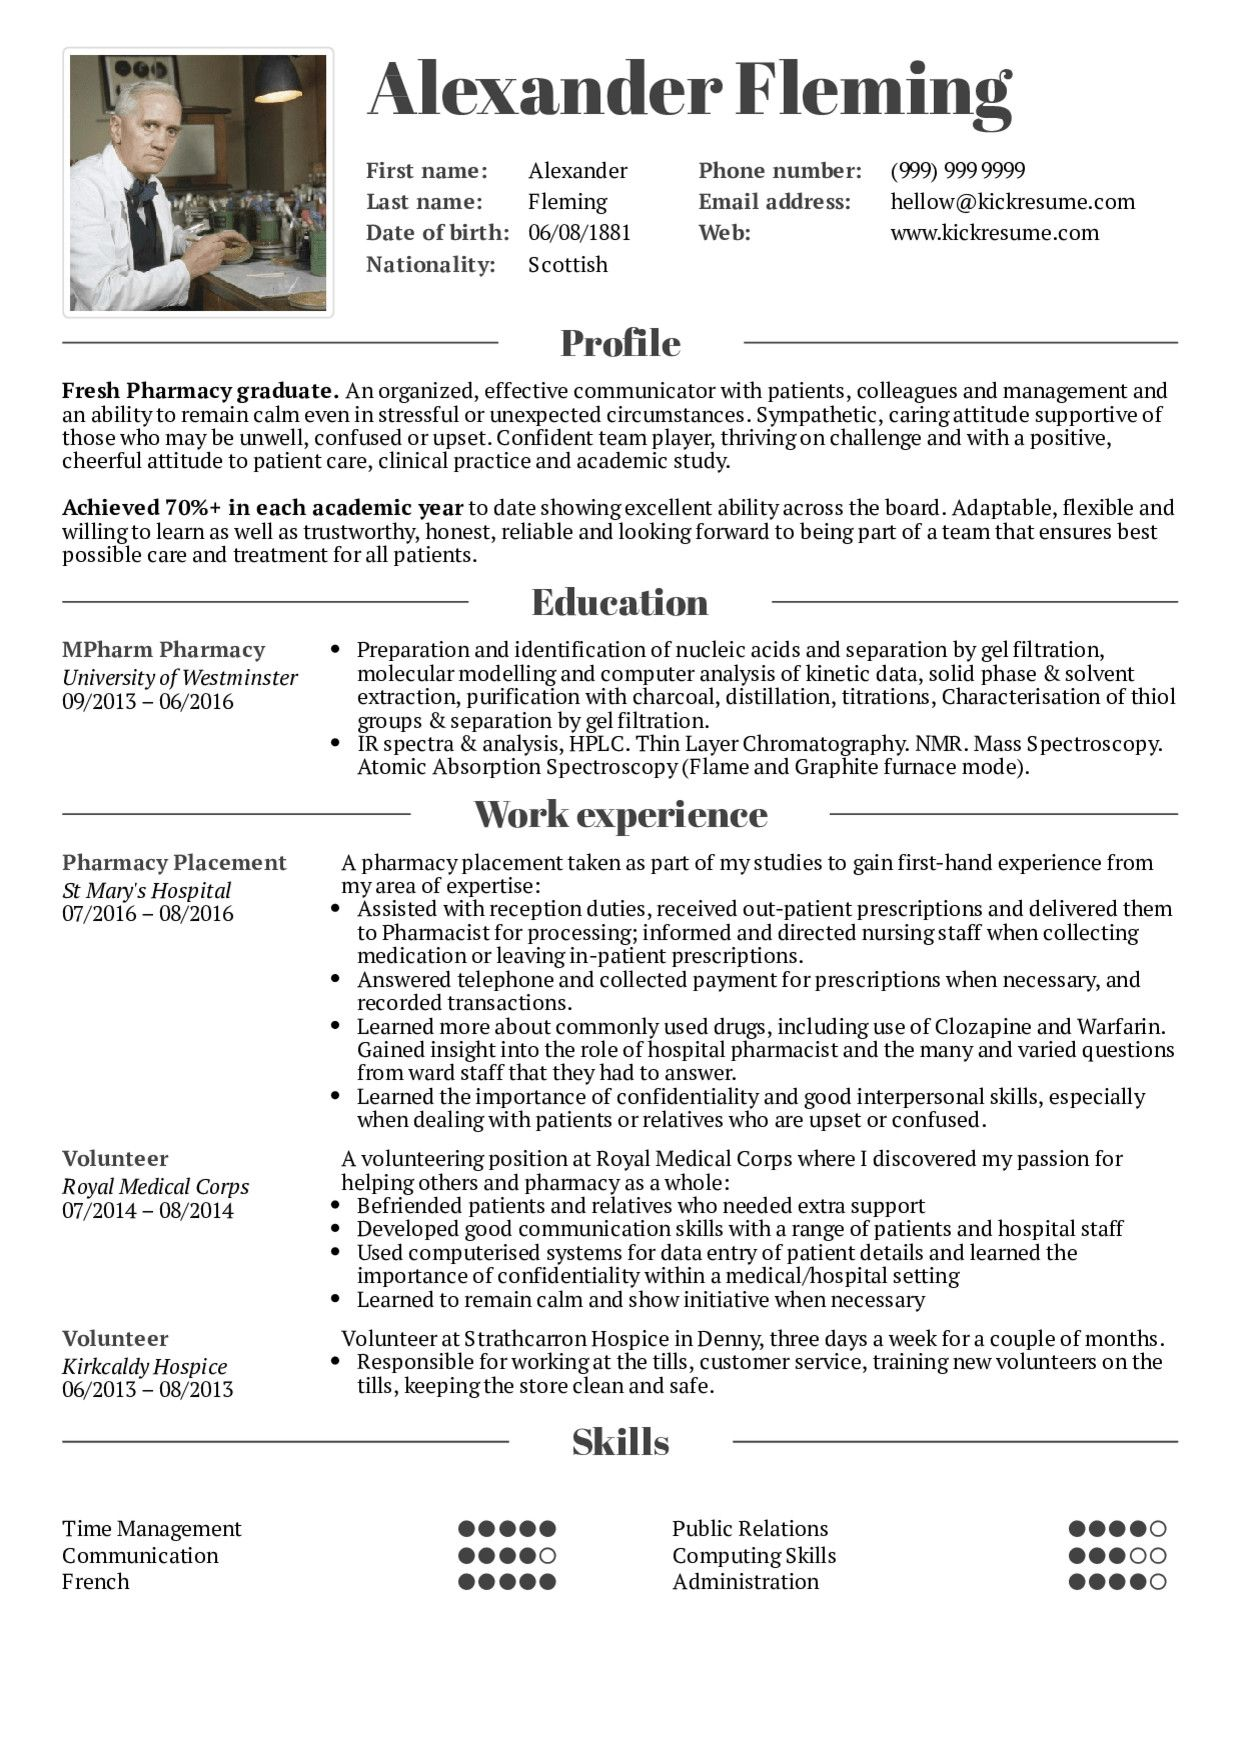 Resume Examples for Students Contemporary Resume Examples